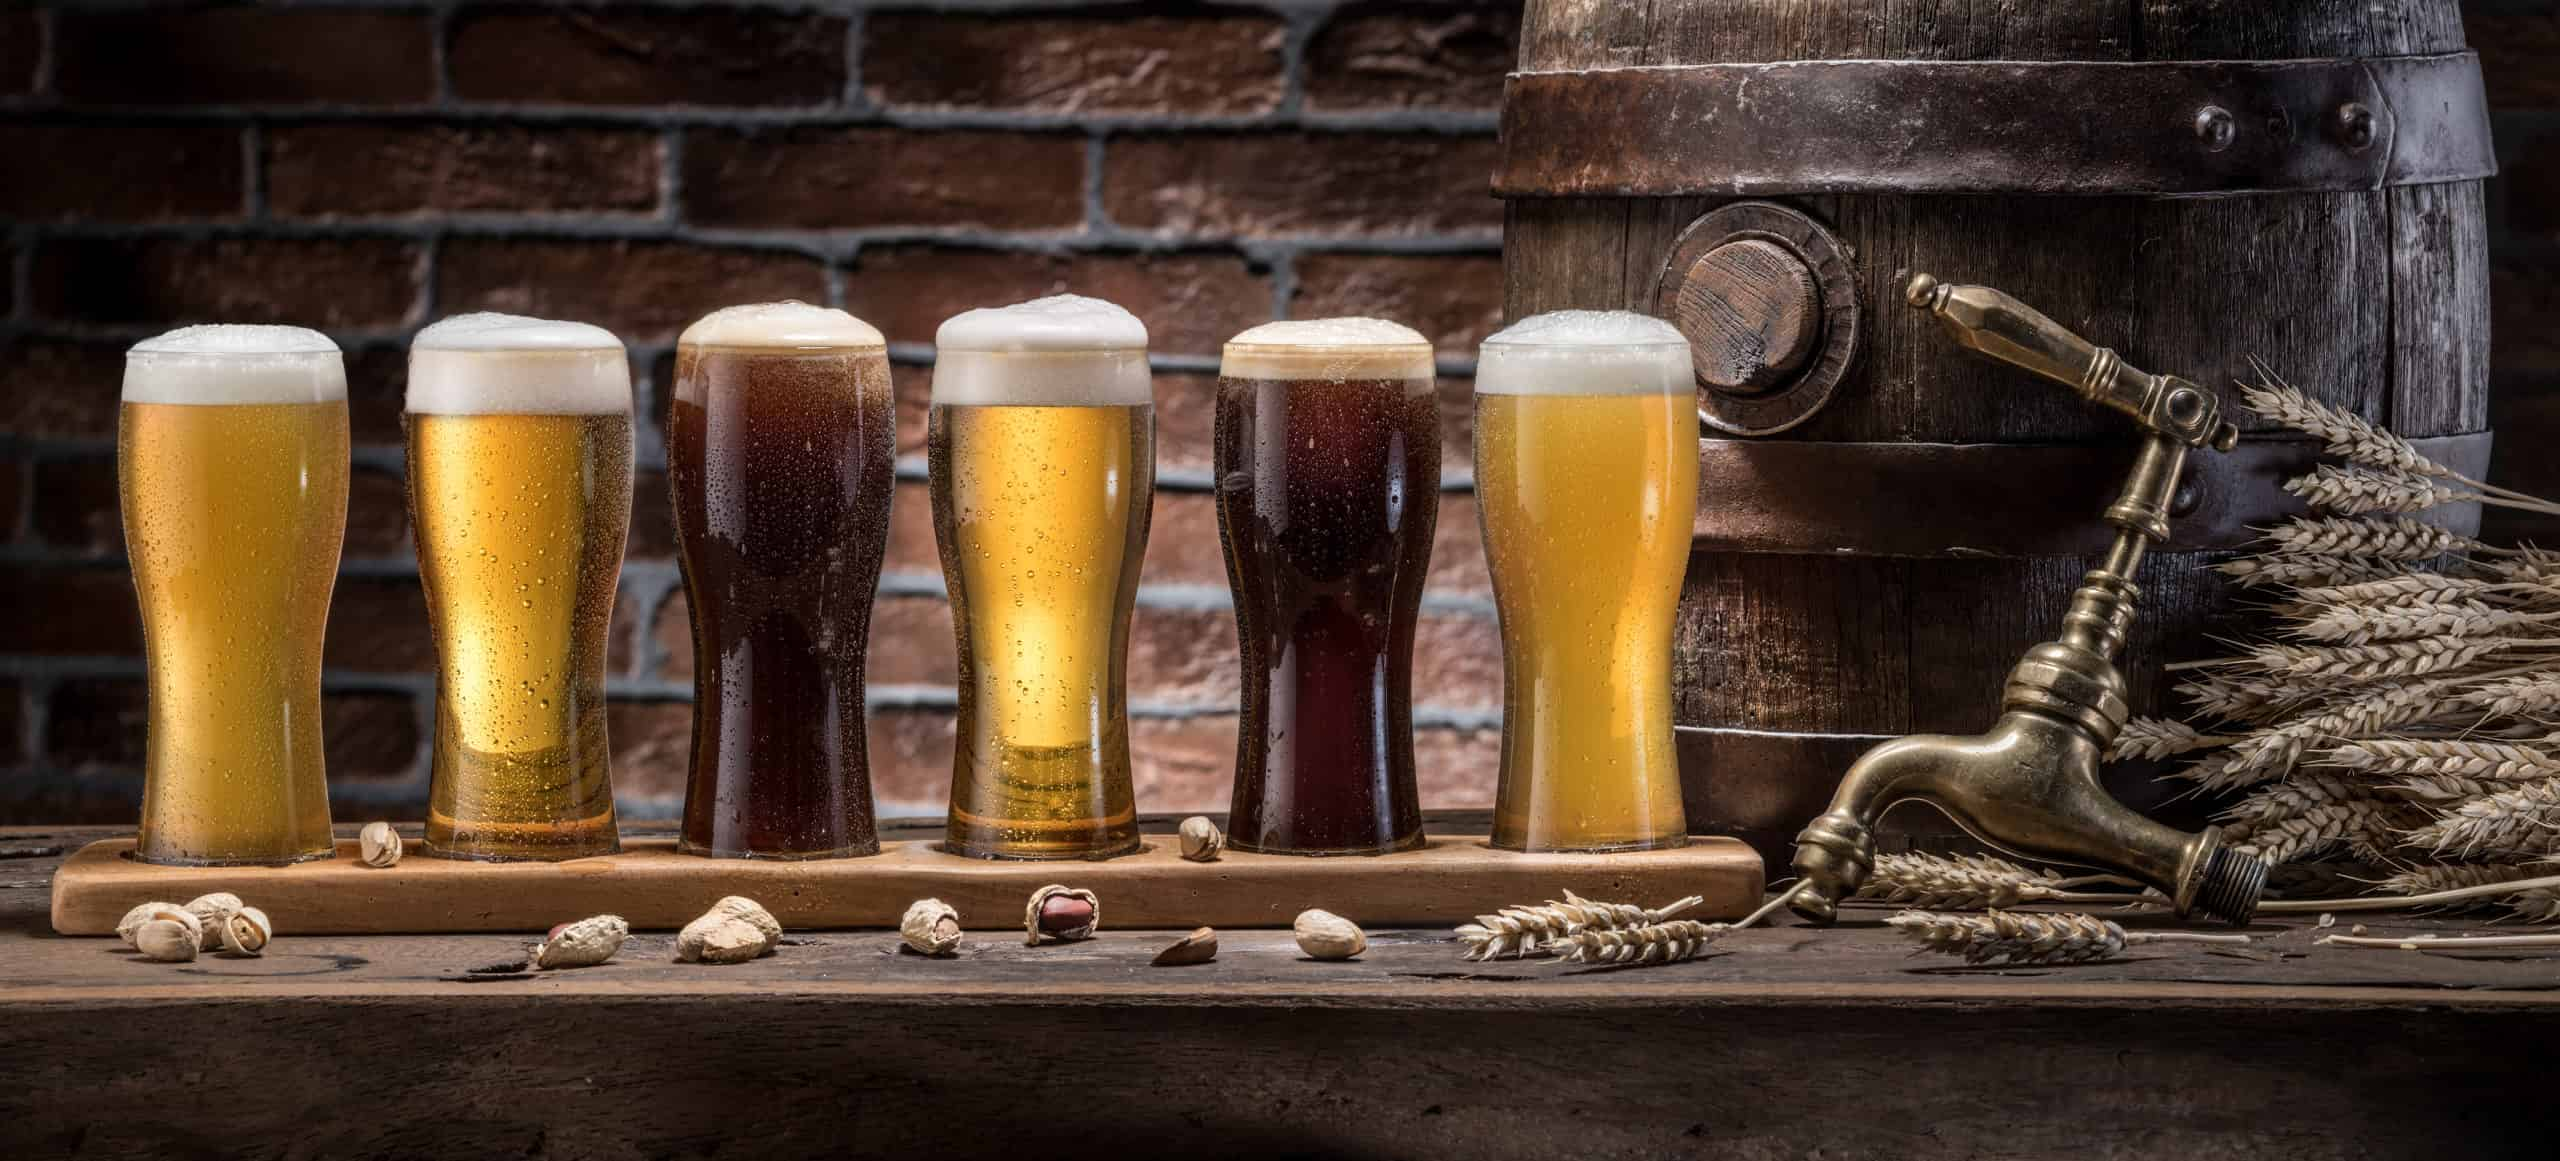 30 Best Breweries of the American Southeast in 2021